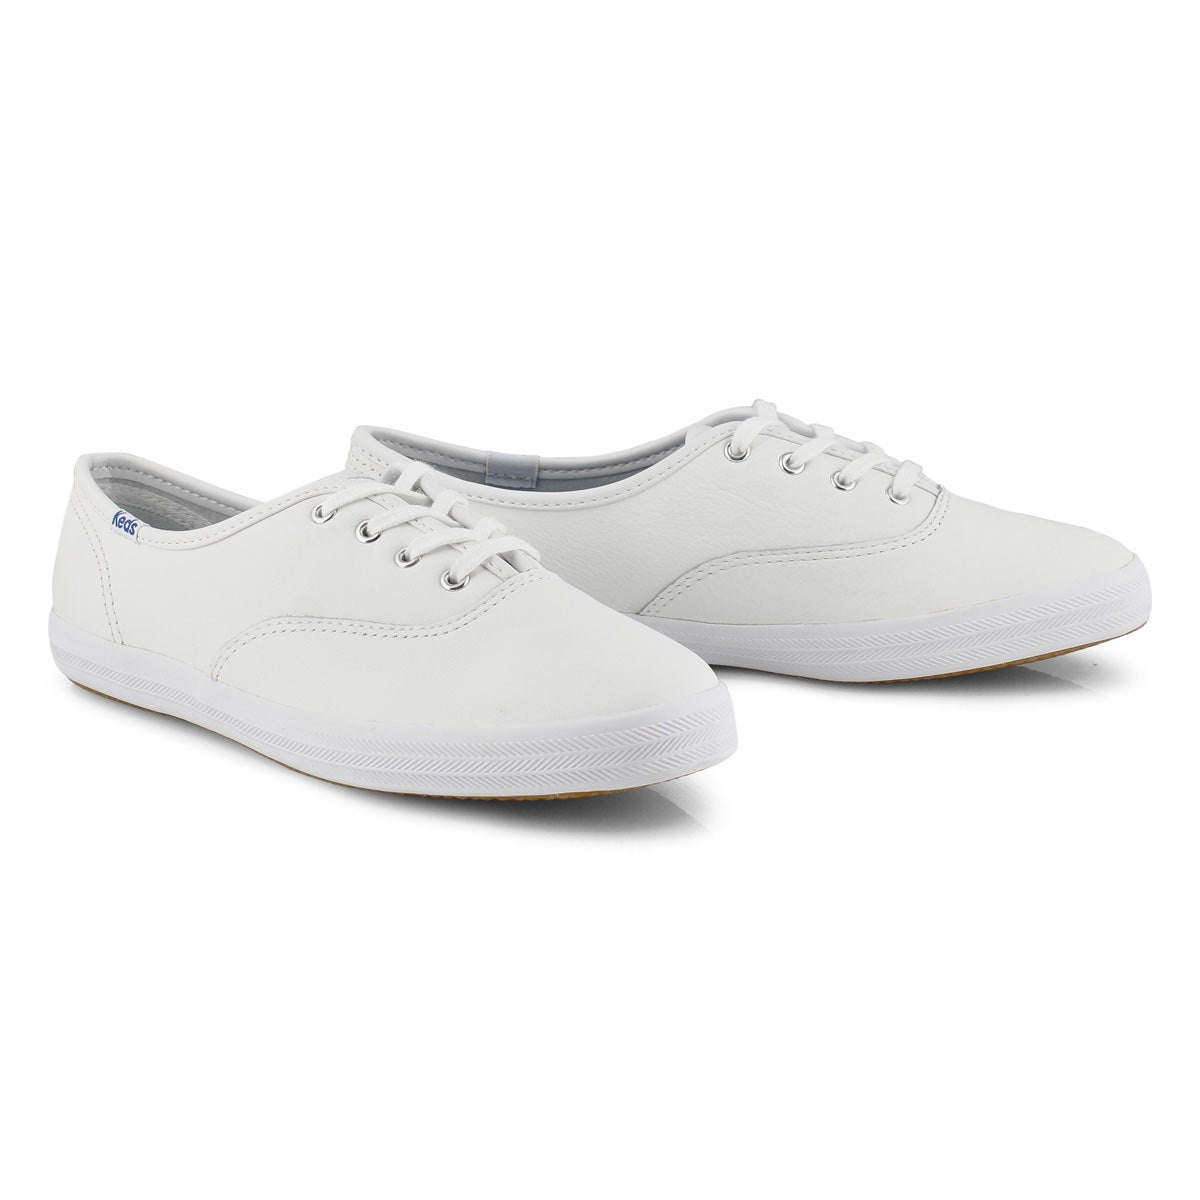 leather keds champion white oxford